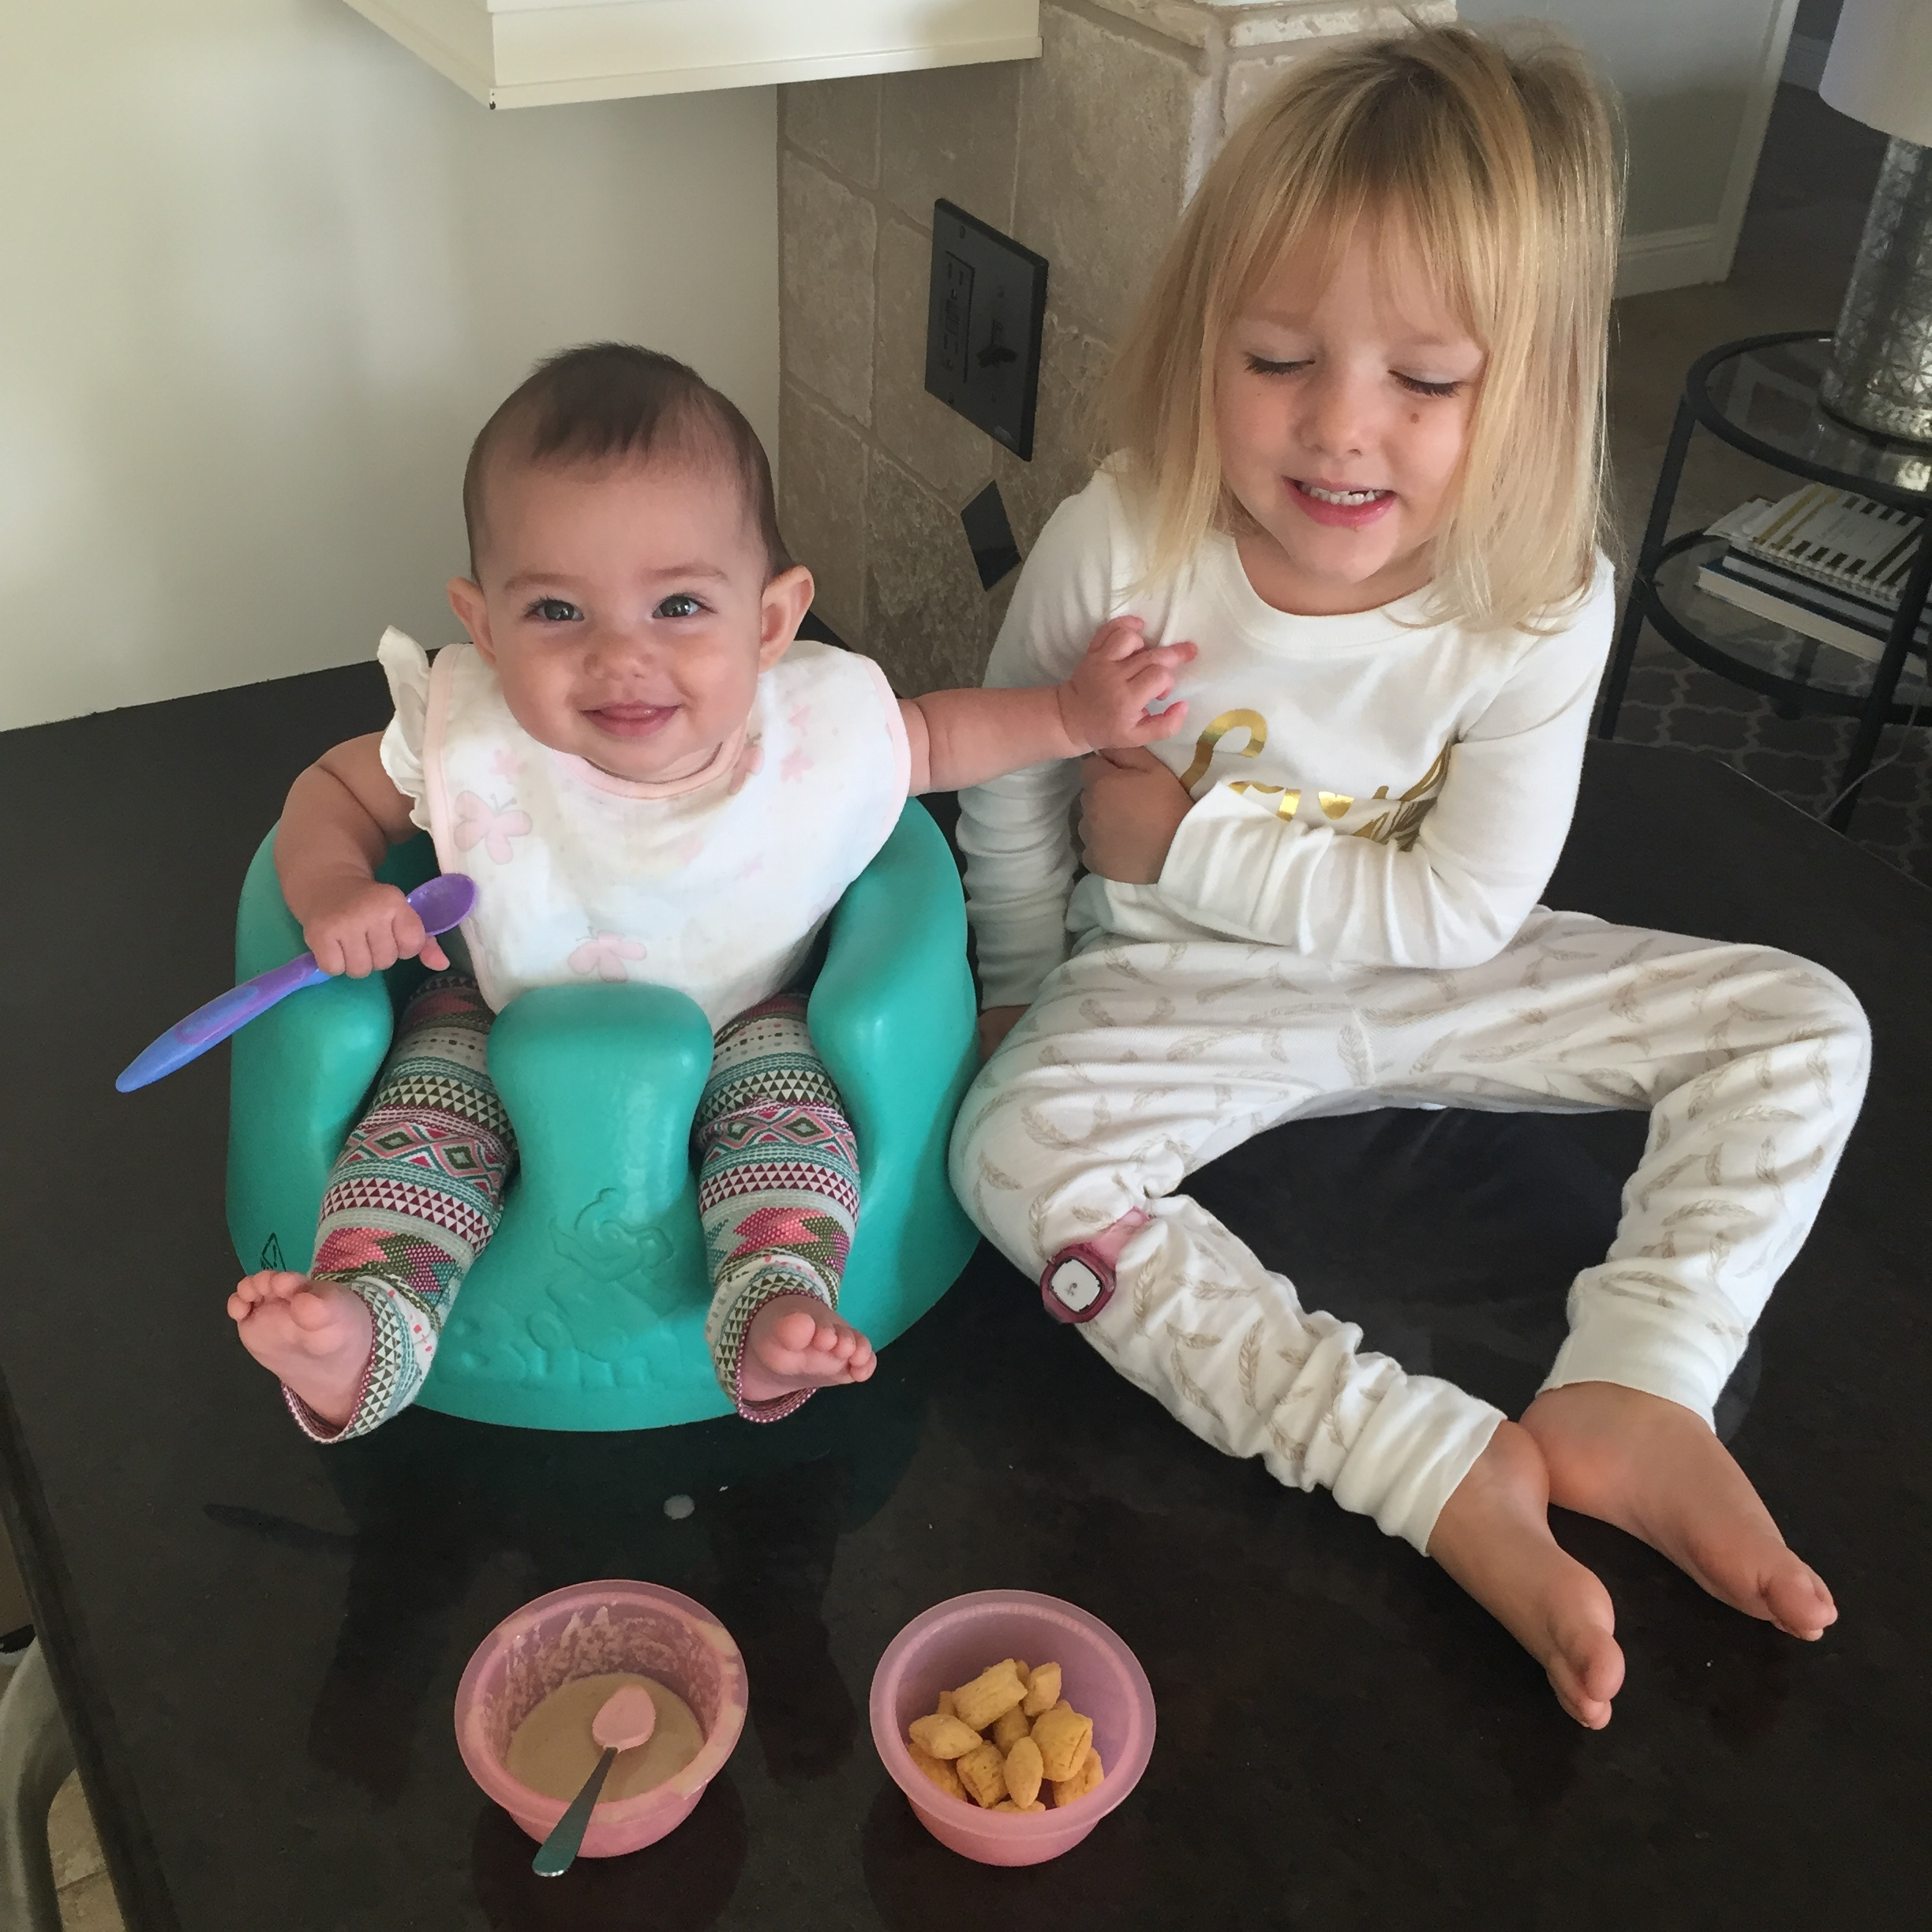 The girls hung out on the counter, read books, sang songs and enjoyed a snack